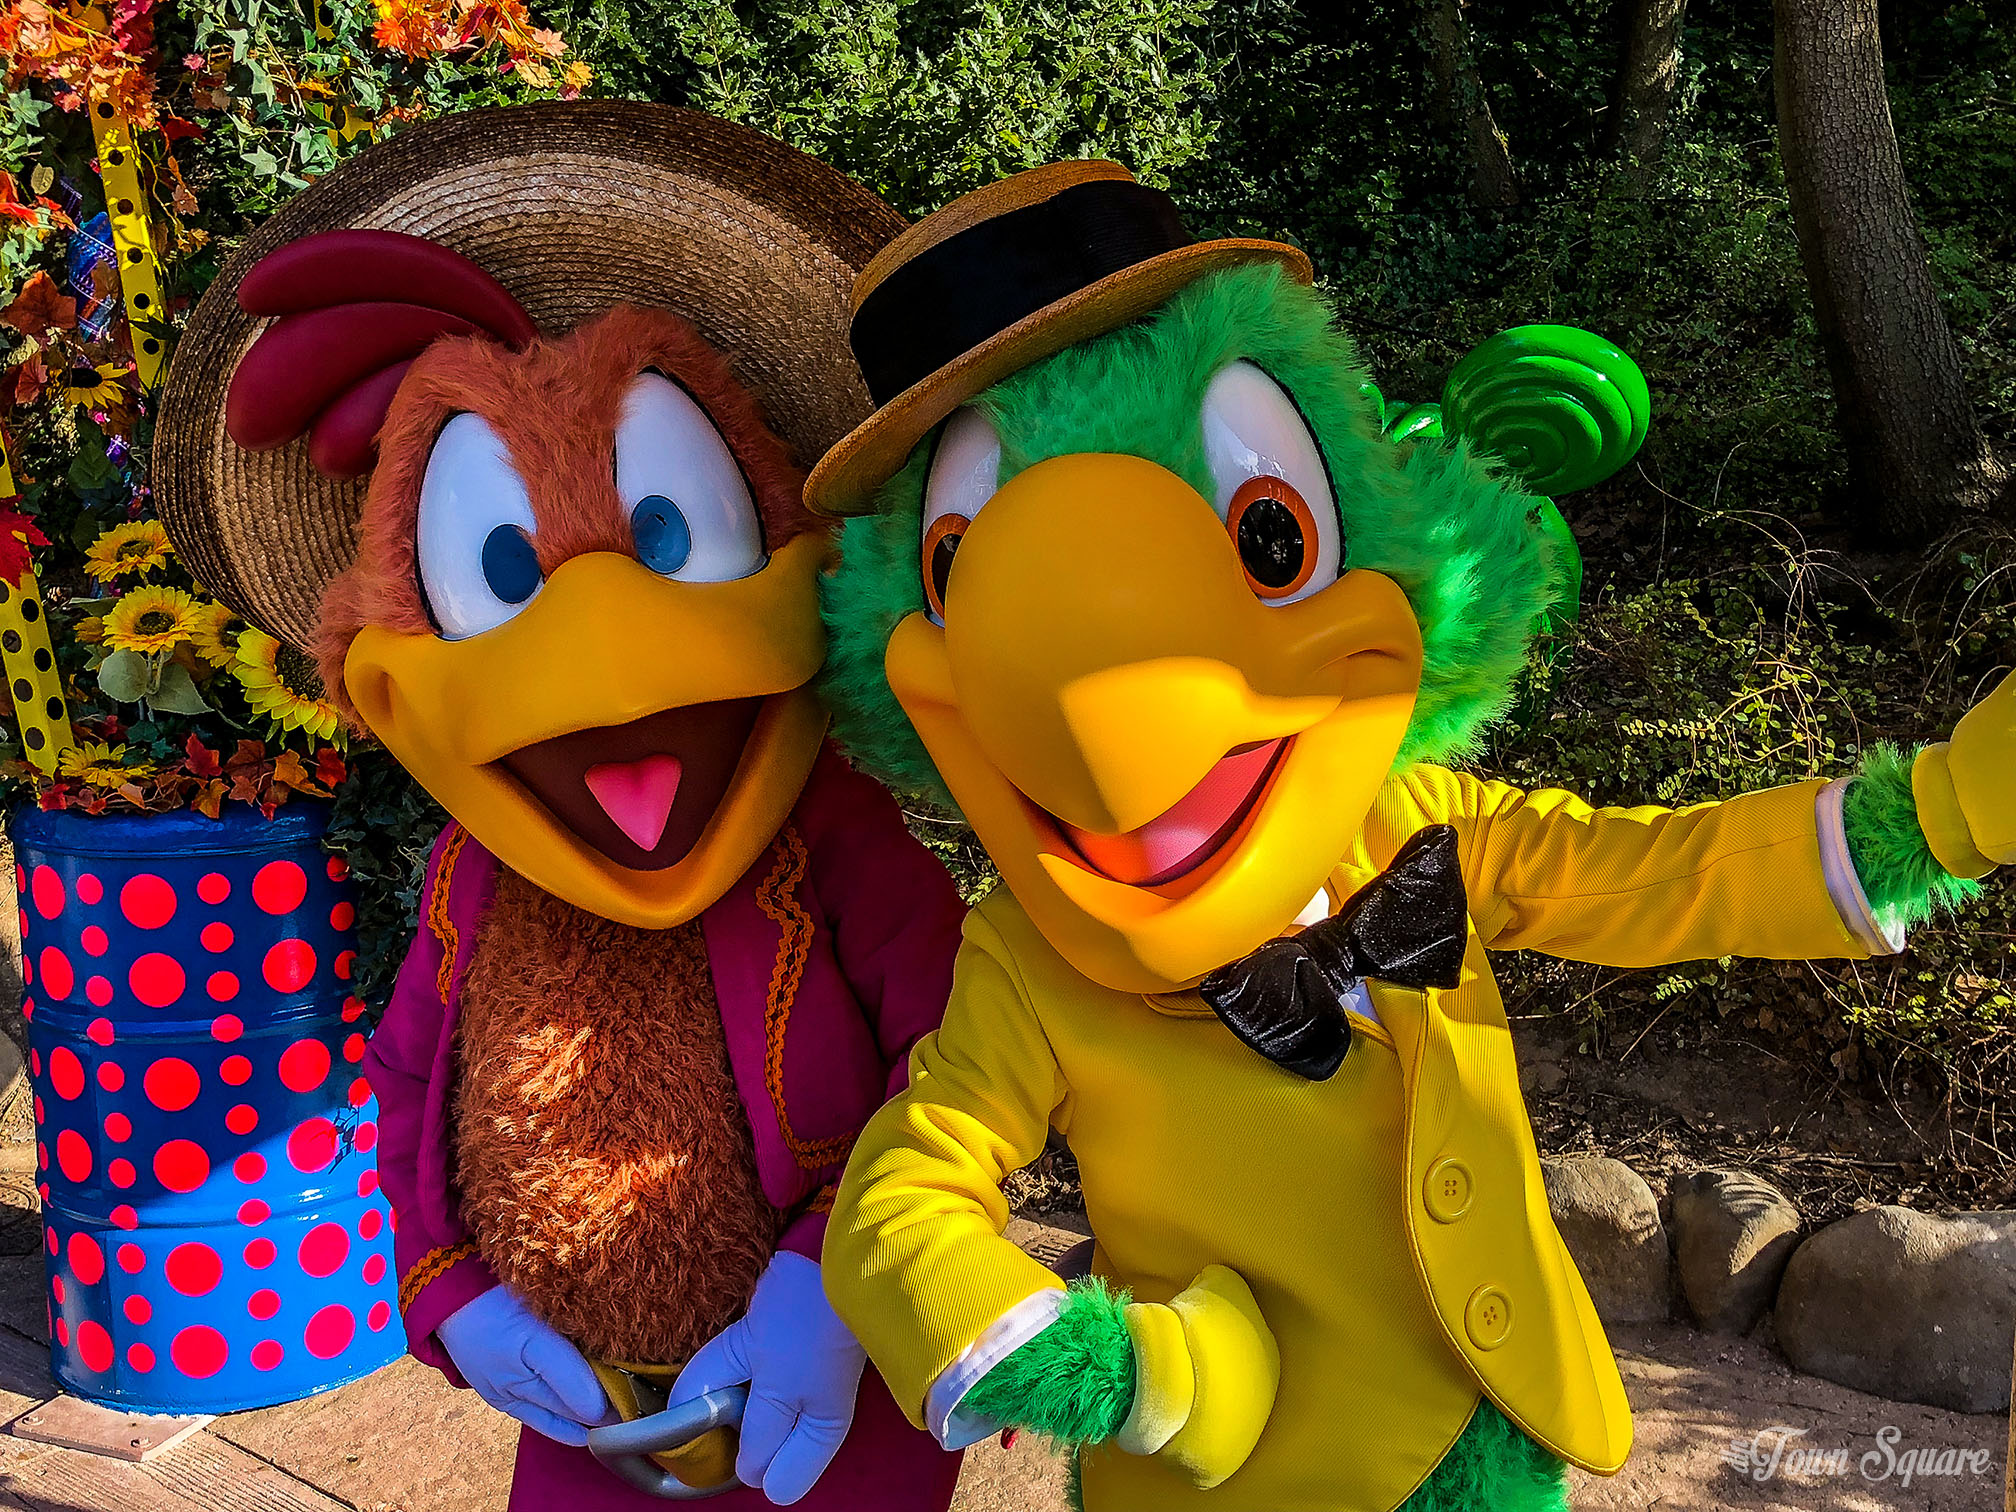 José and Panchito at Disneyland Paris during the 2018 Halloween season